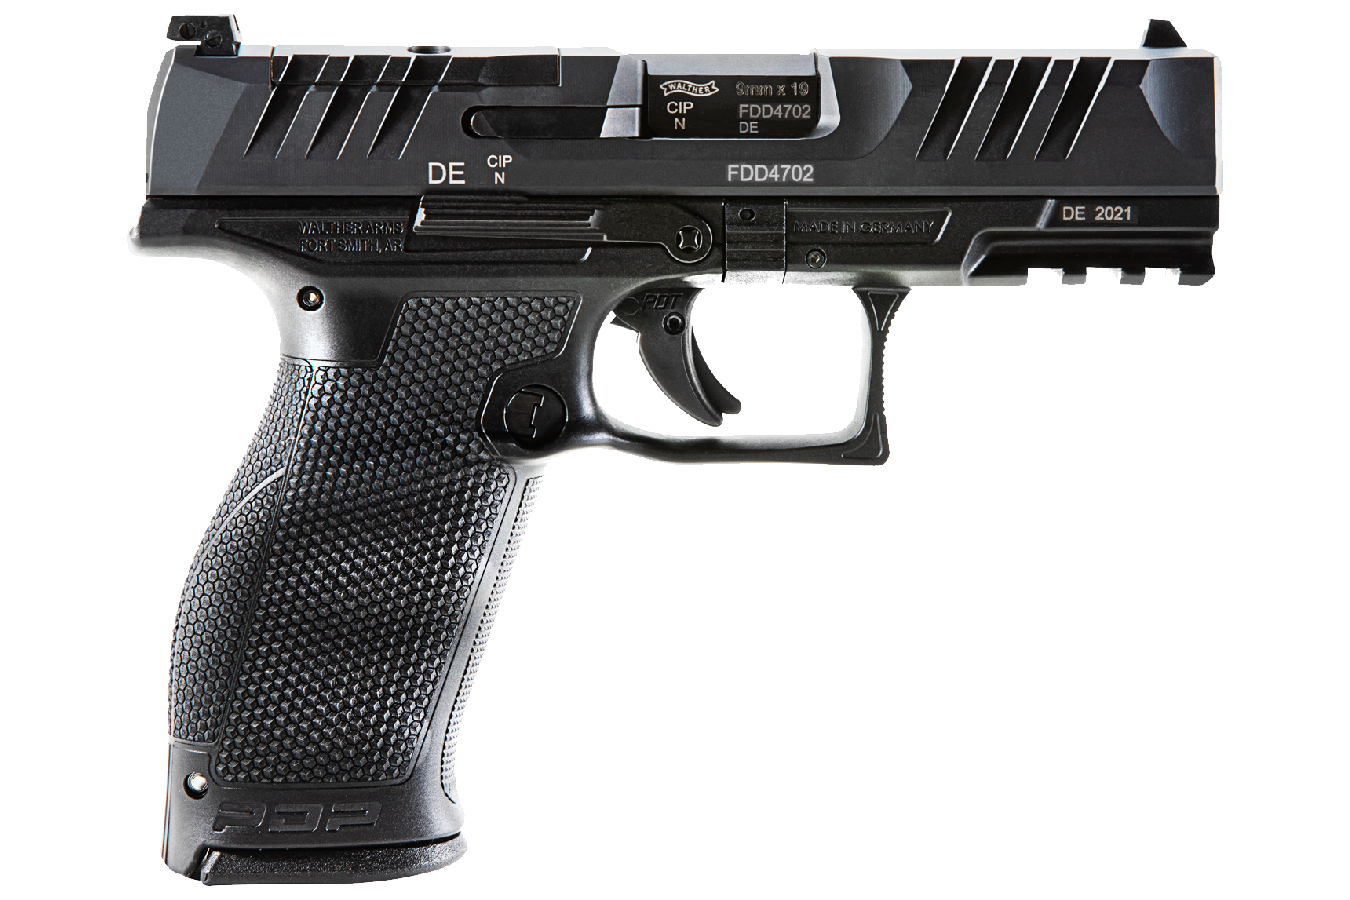 PDP FULL-SIZE 9MM OPTICS READY PISTOL WITH 4 INCH BARREL